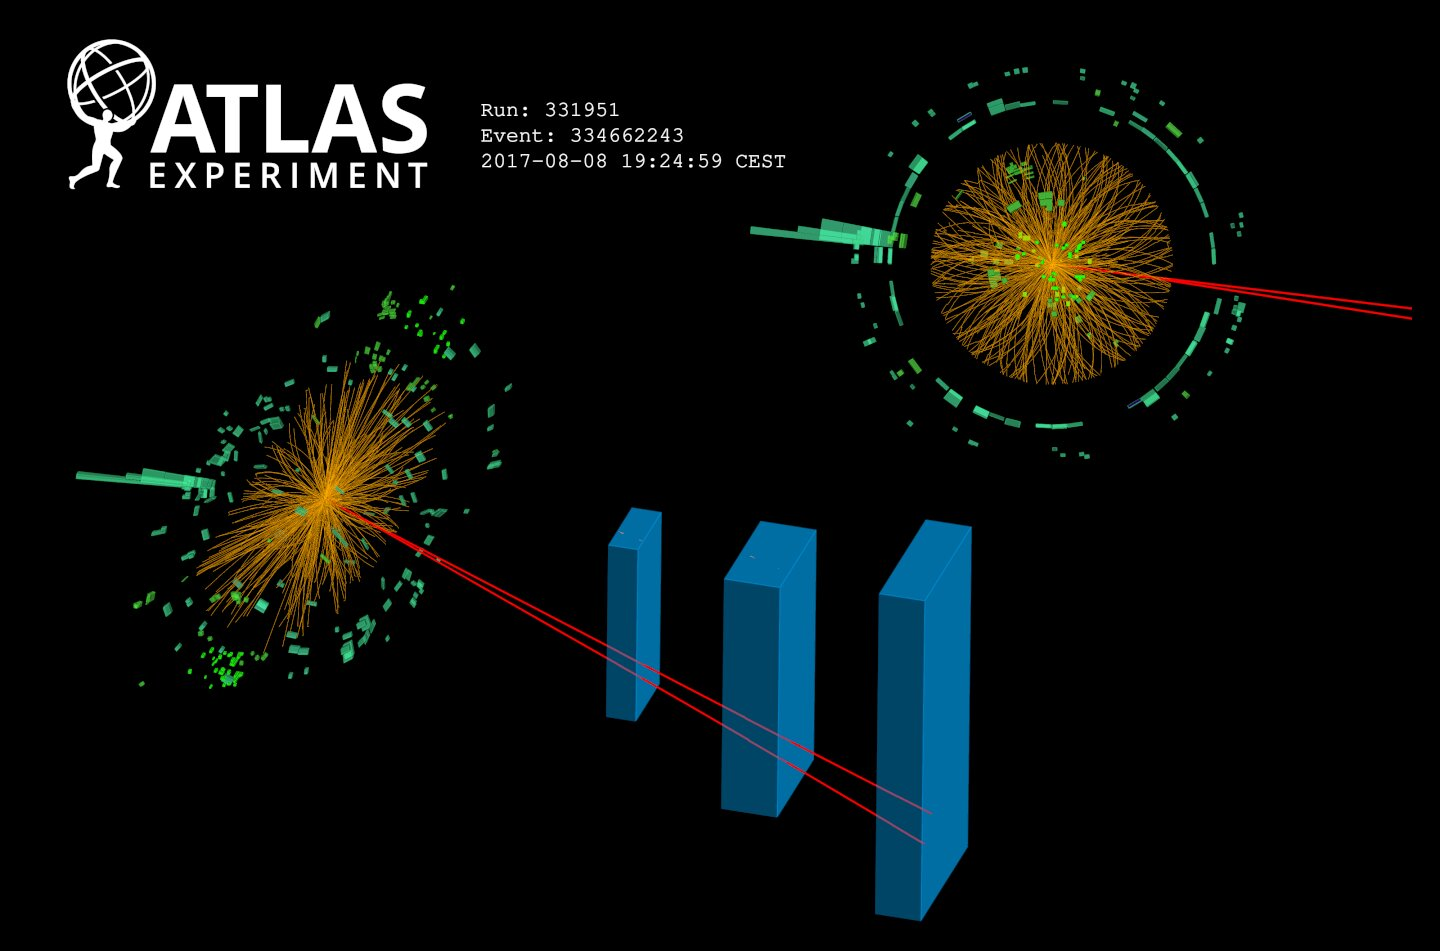 In a new study, researchers working with the Large Hadron Collider found the first evidence for a rare Higgs boson decay.